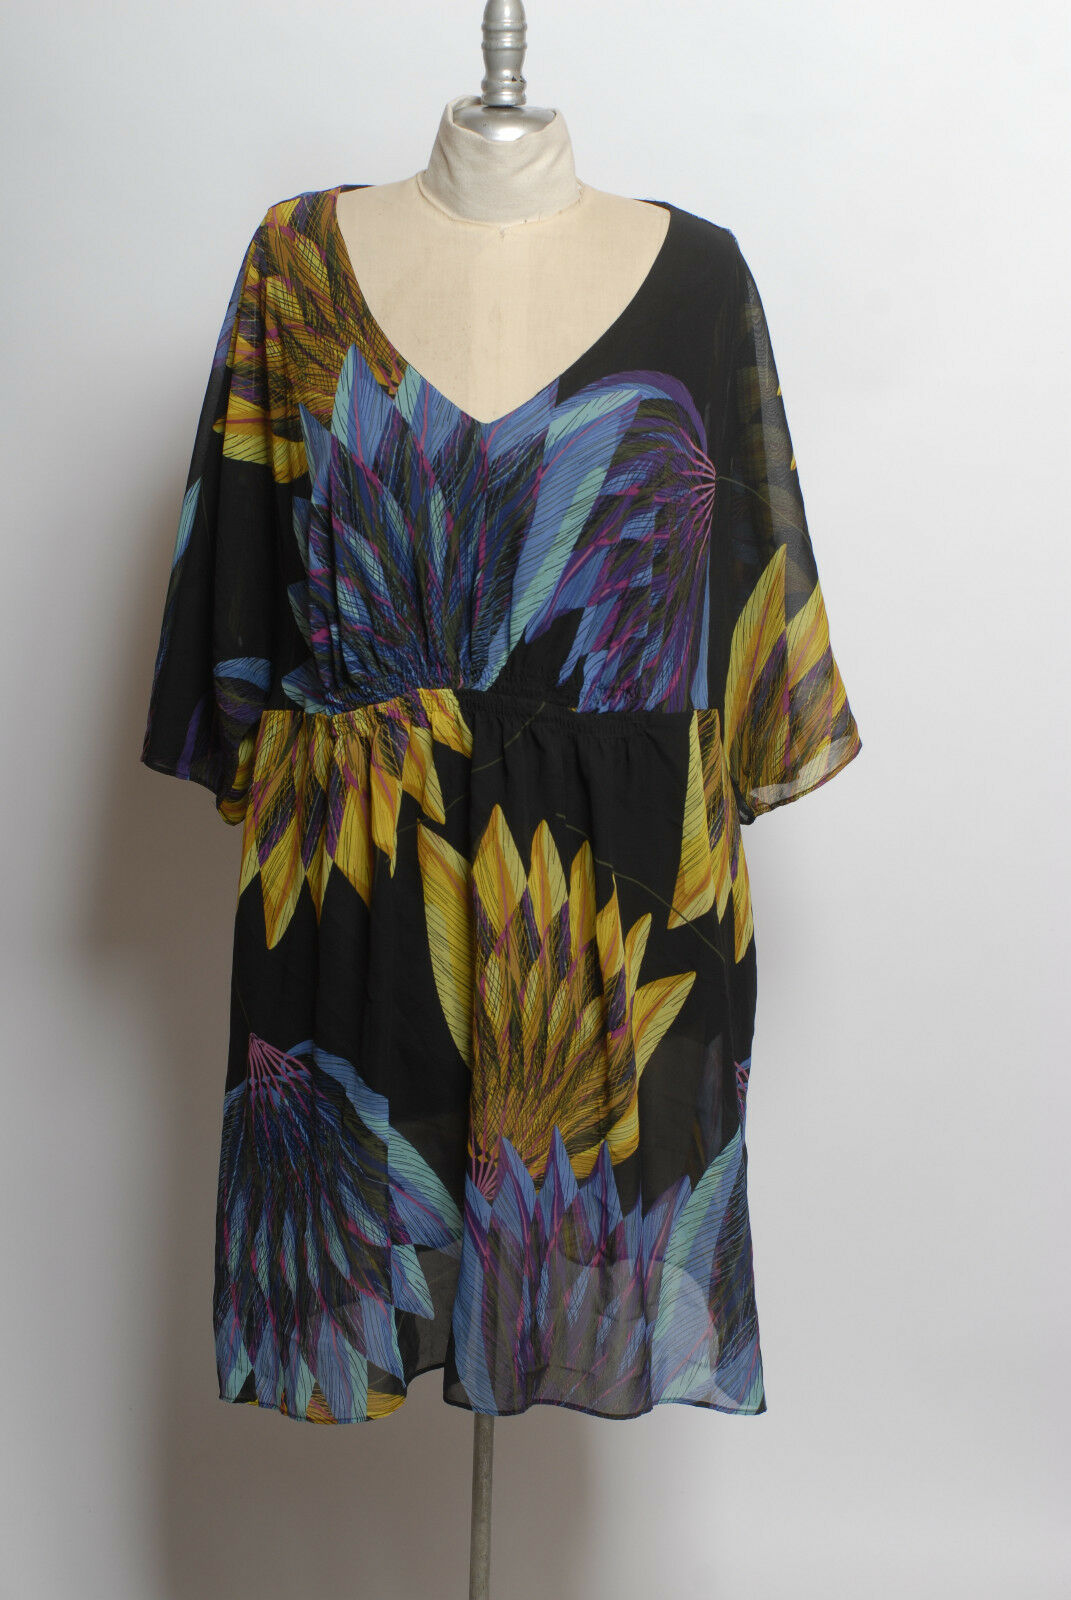 Lane Bryant Multi color large abstract palm feather fan floral pattern dress